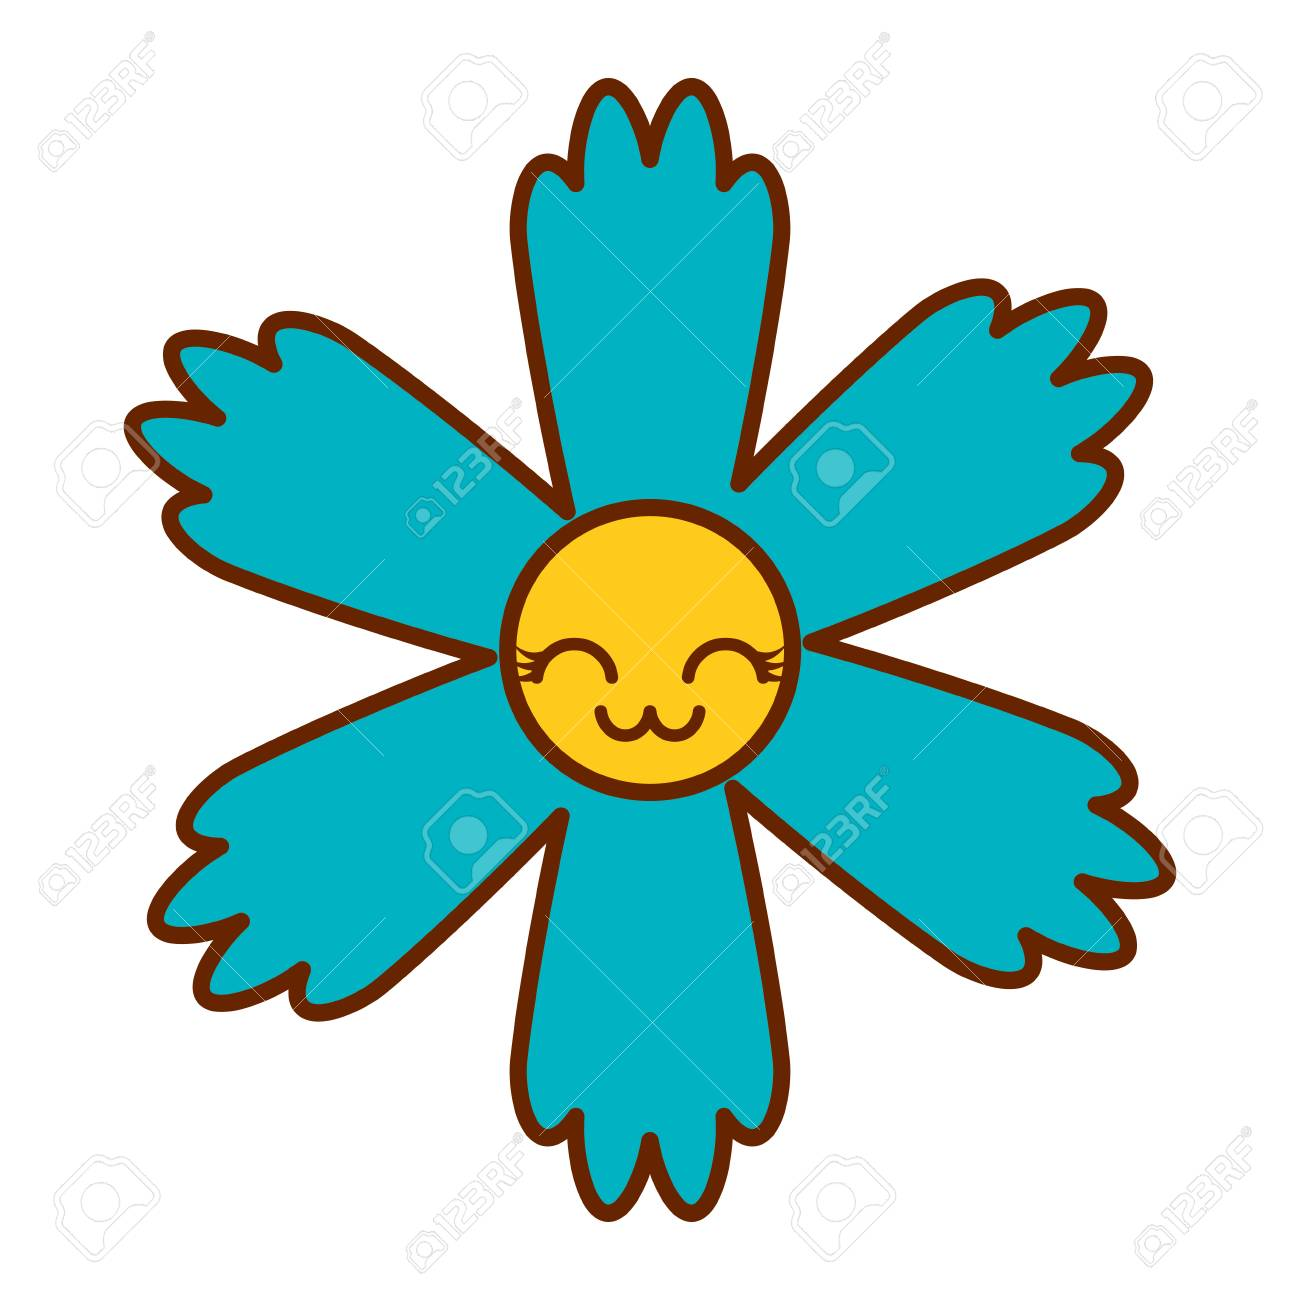 Cute Blue Flower Kawaii Cartoon Vector Illustration Royalty Free